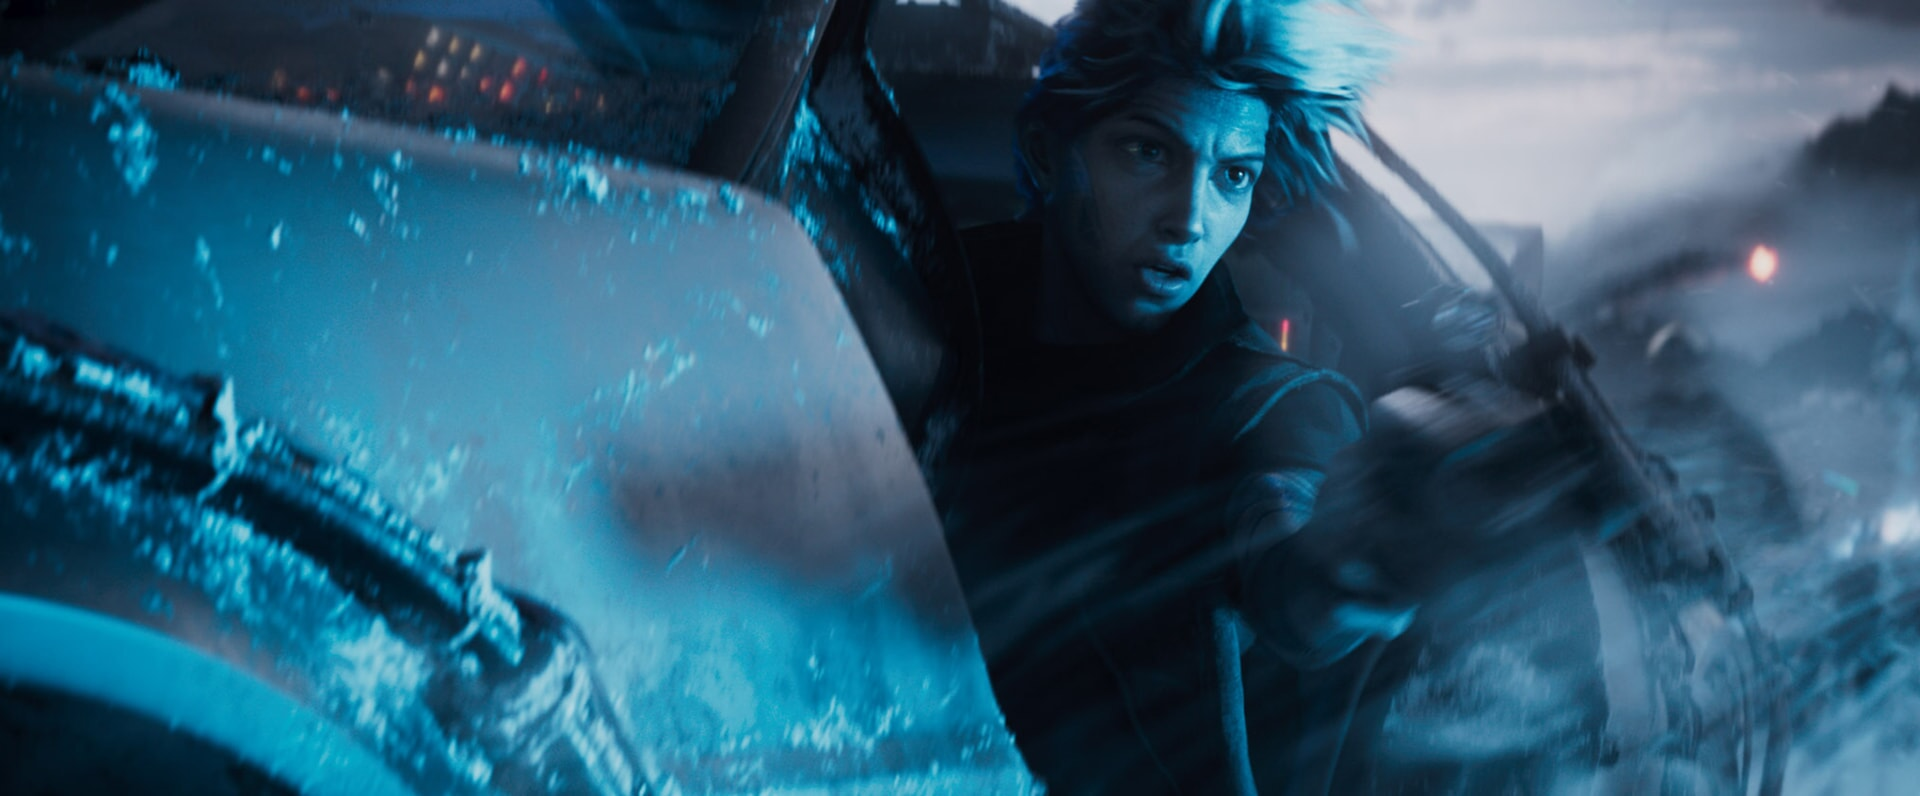 """TYE SHERIDAN as Parzival in Warner Bros. Pictures', Amblin Entertainment's and Village Roadshow Pictures' action adventure """"READY PLAYER ONE,"""" a Warner Bros. Pictures release."""